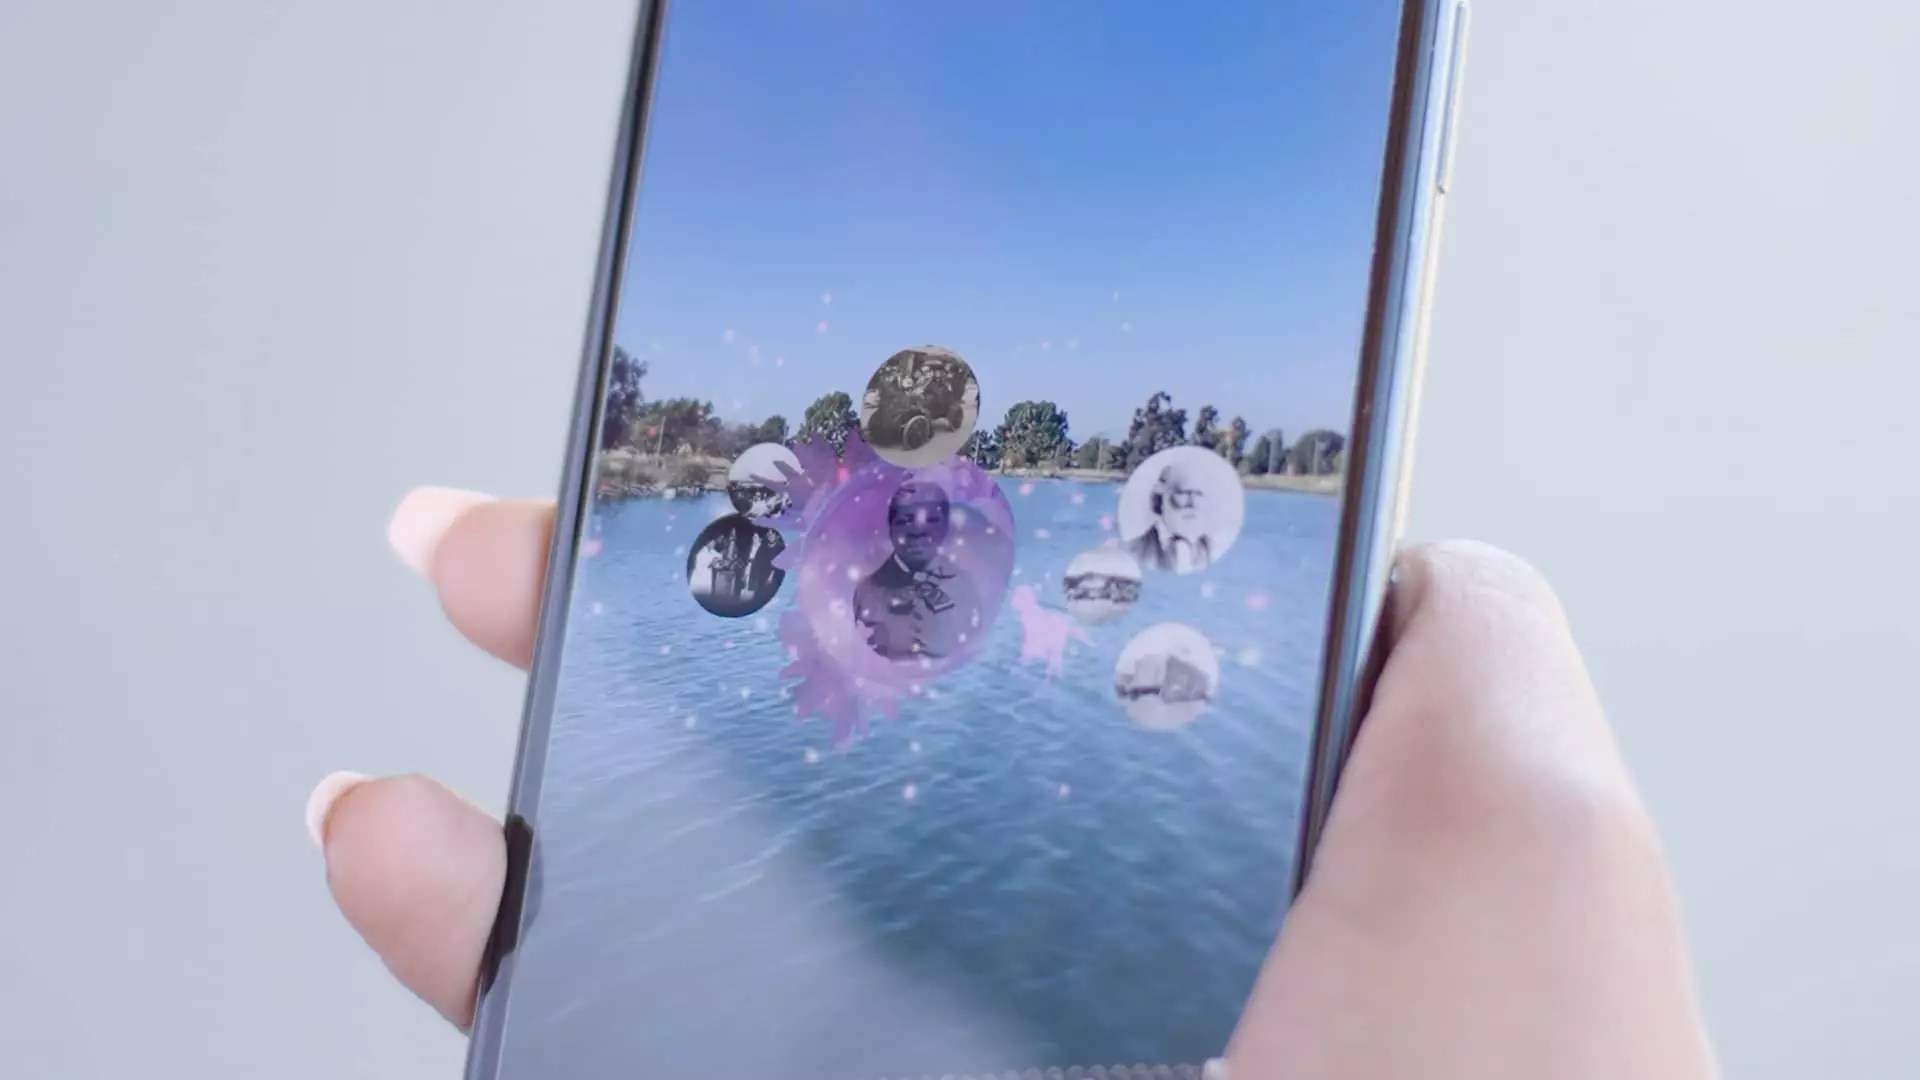 4 Ways AR and VR Can Help Save the Planet